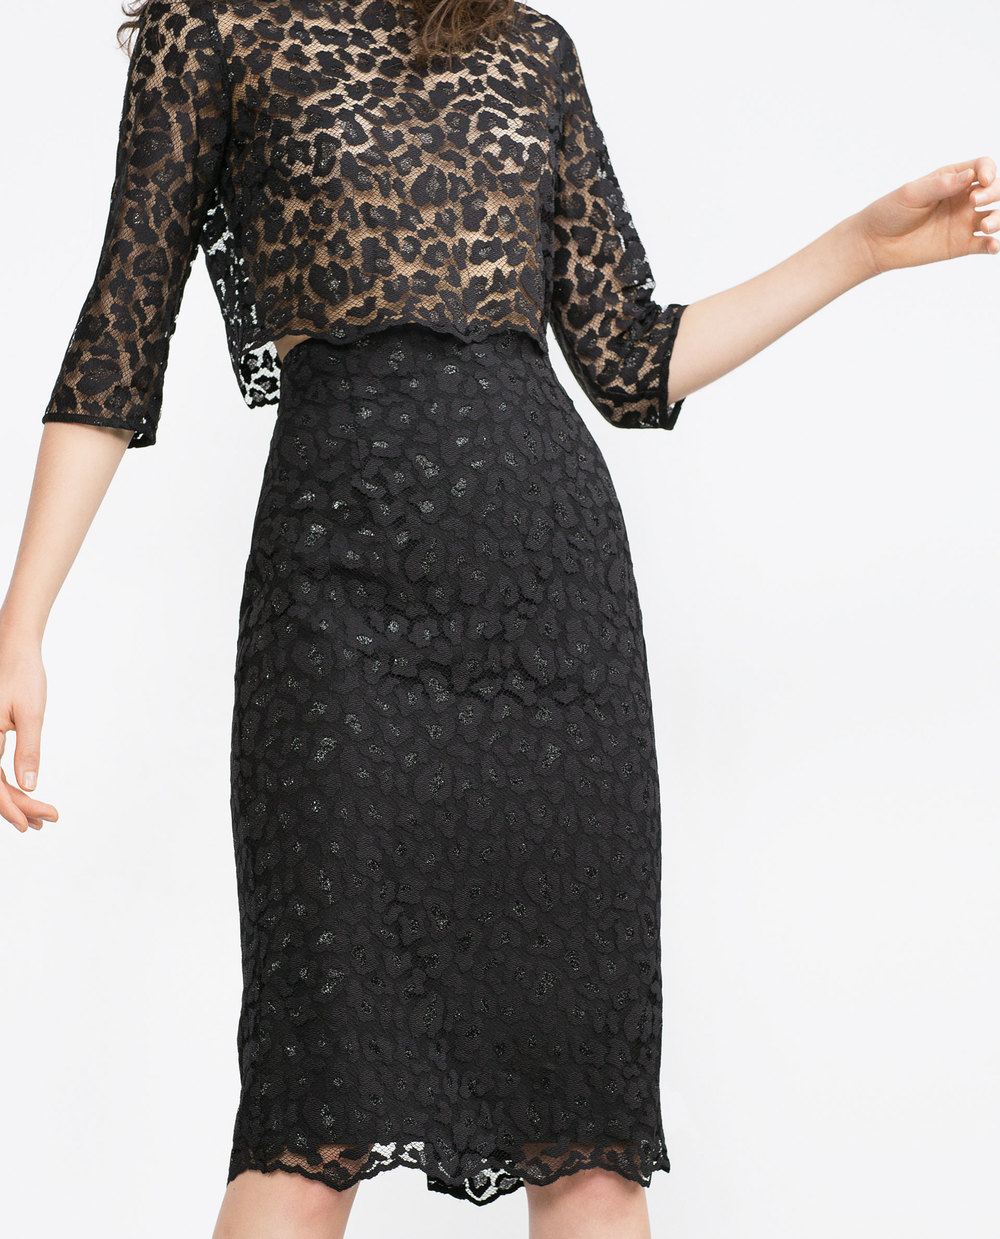 Lace Pencil Skirt. Zara. $49.